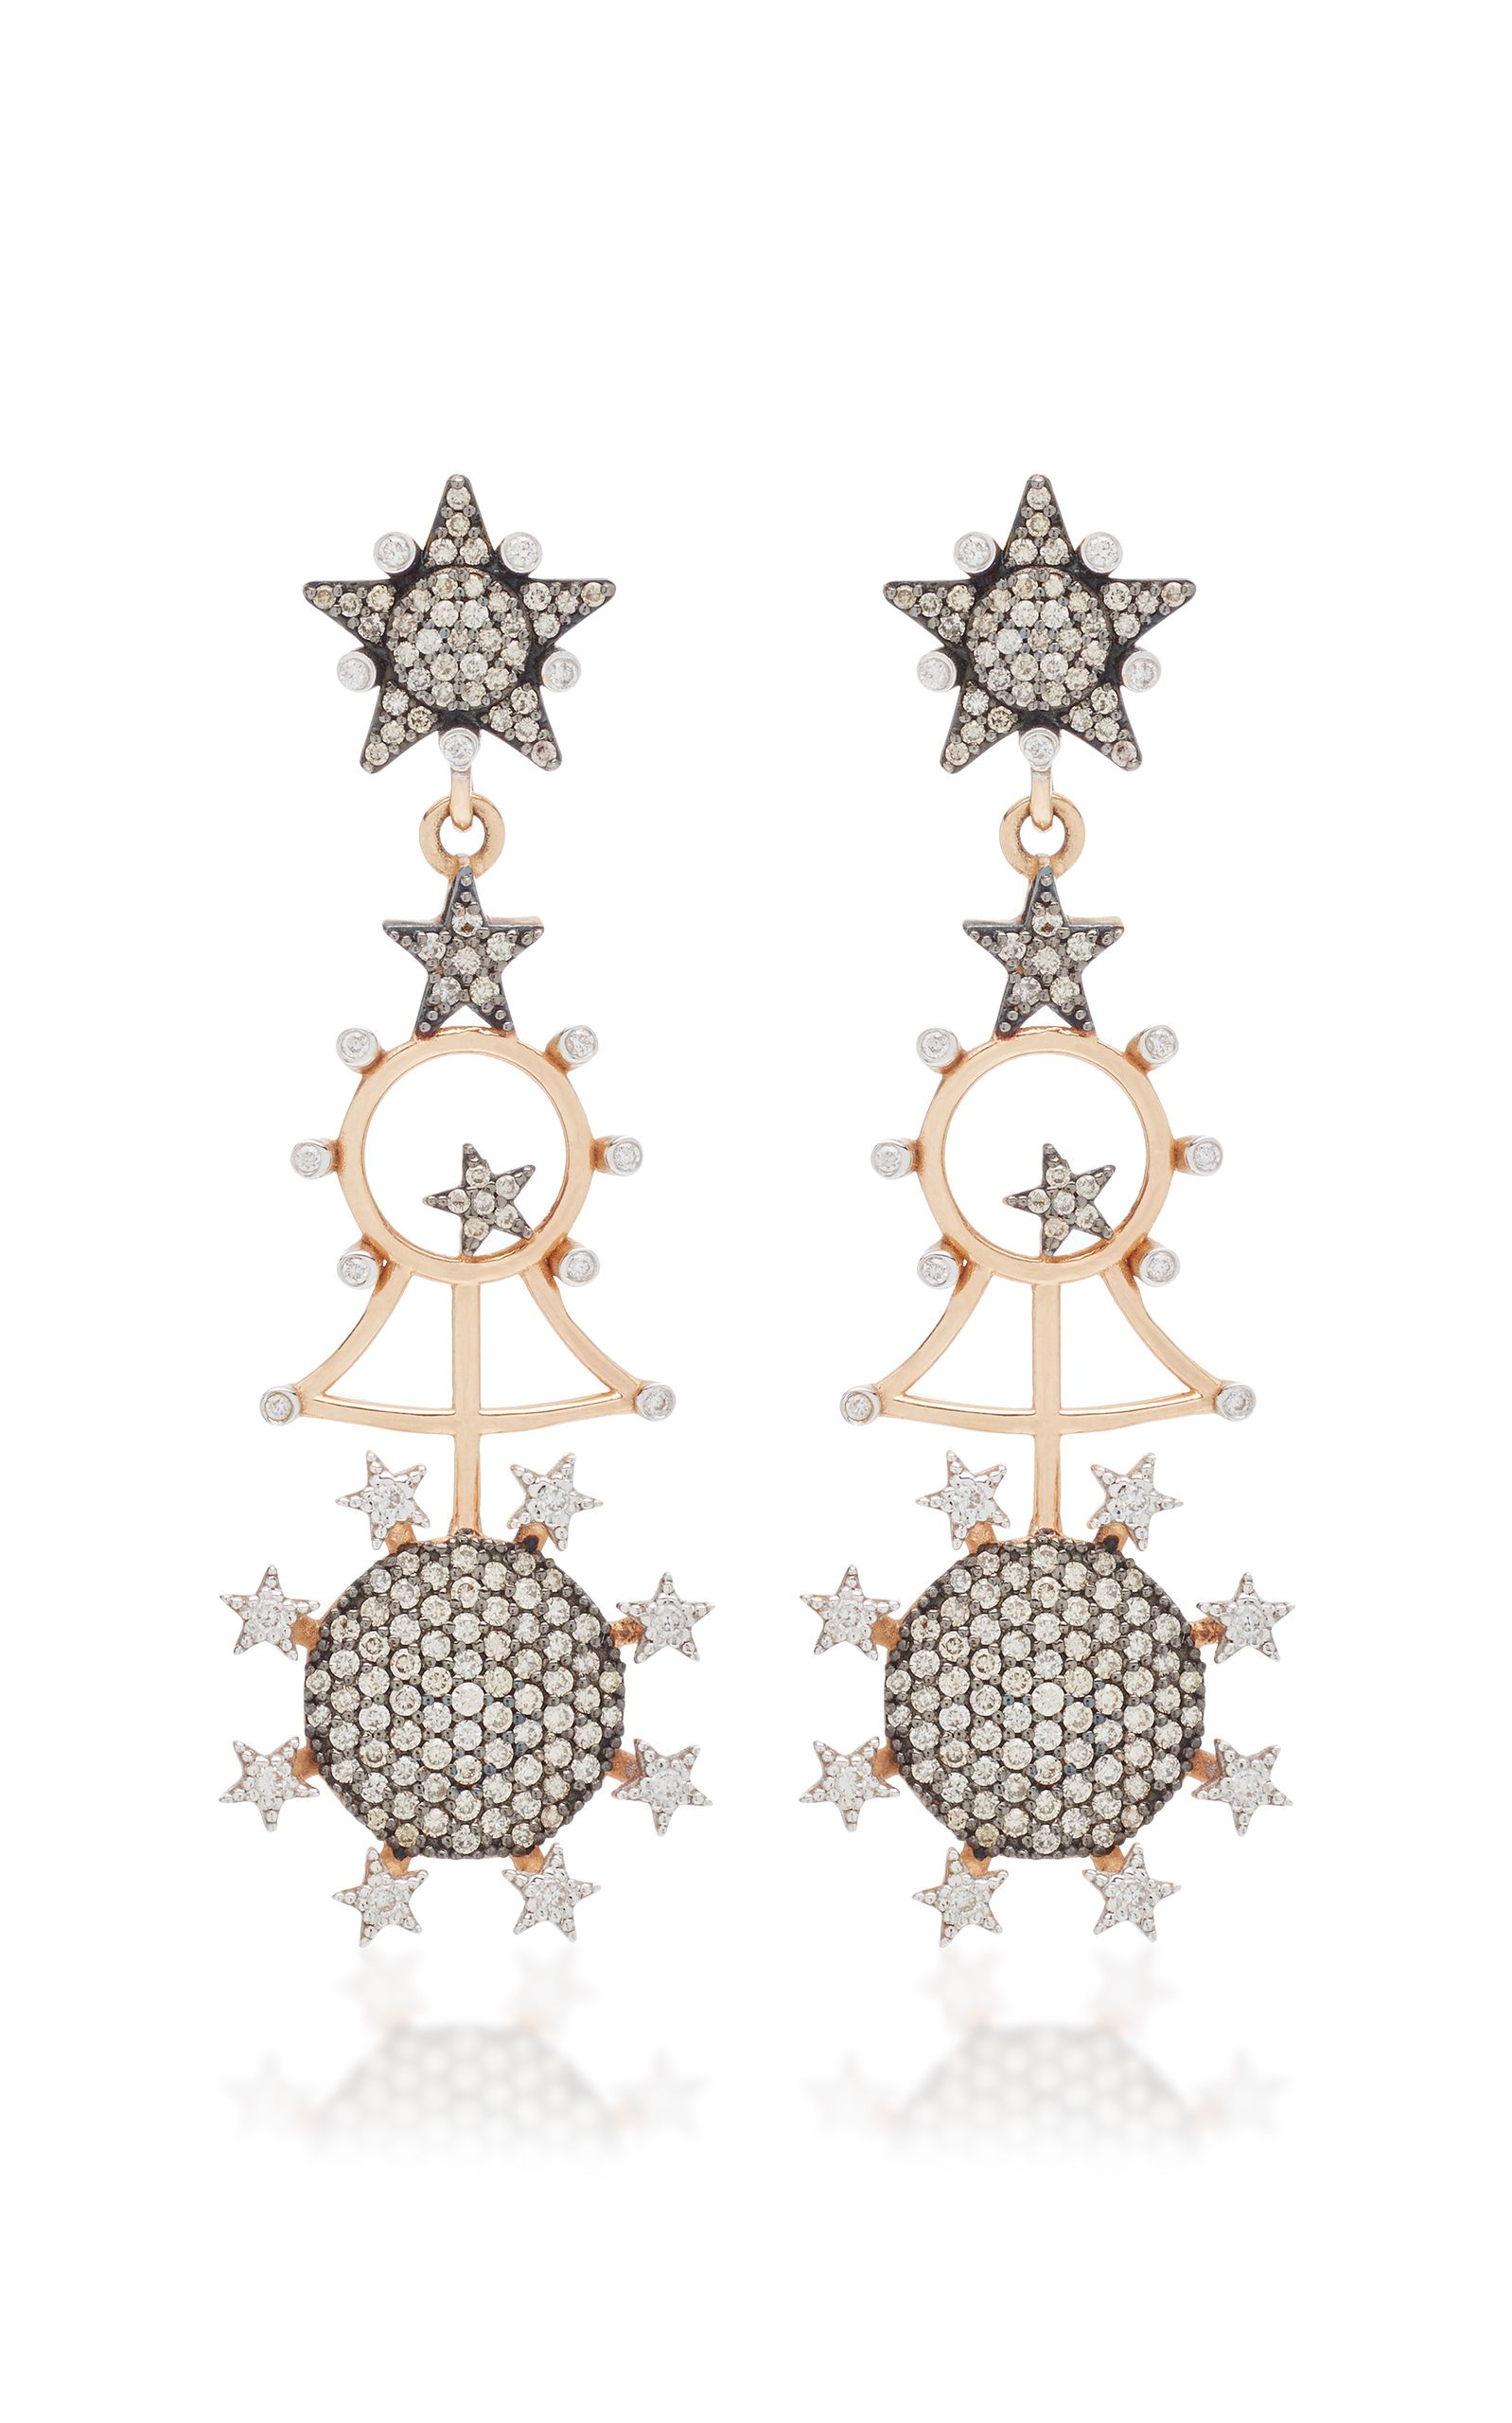 Kismet by Milka Eclectic Champagne & White Diamond Large Star Stud Earring 46M3un